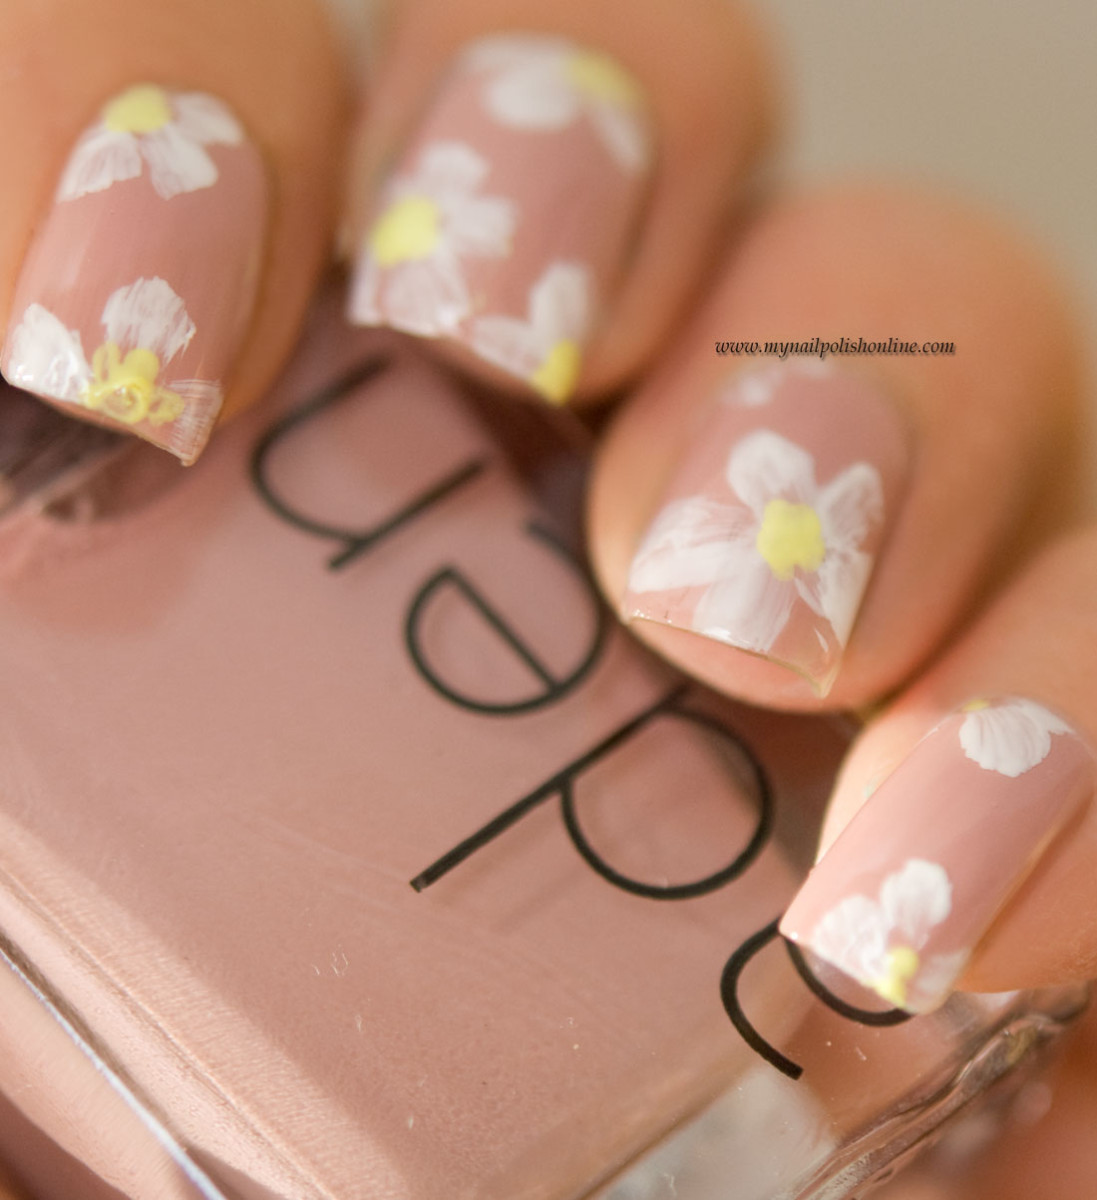 Nail art Sunday - Floral manicure